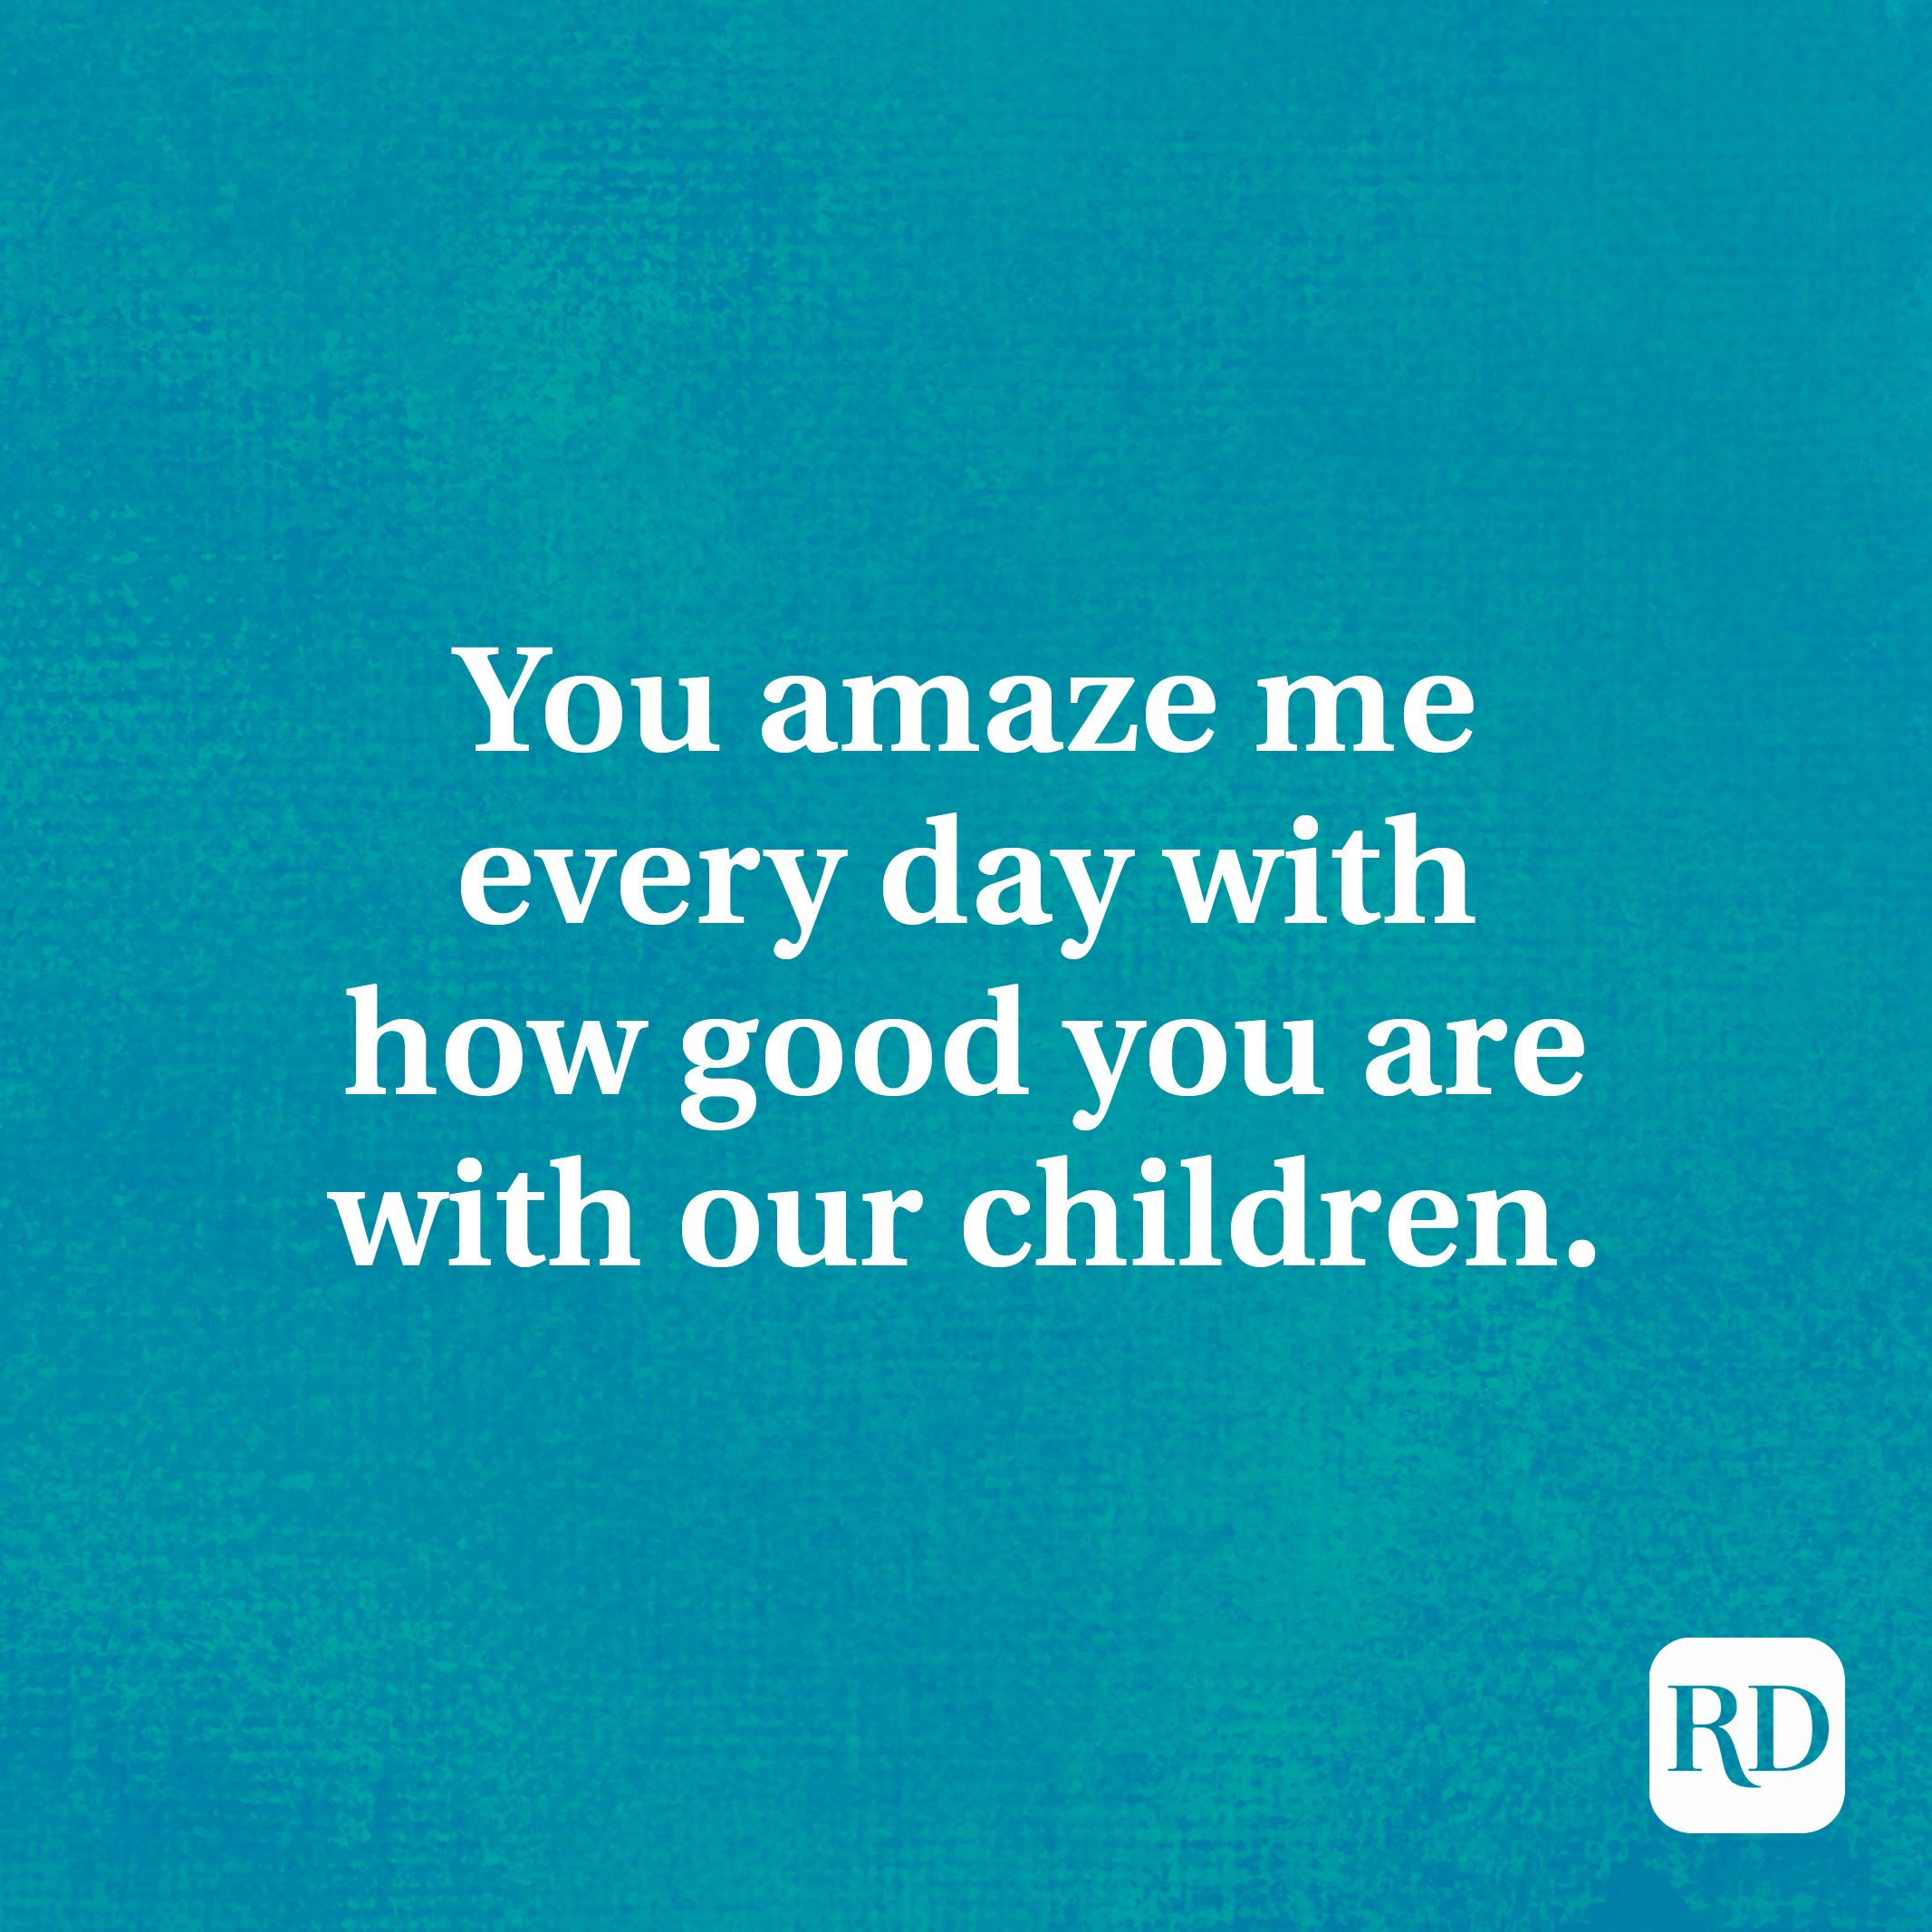 You amaze me every day with how good you are with our children.